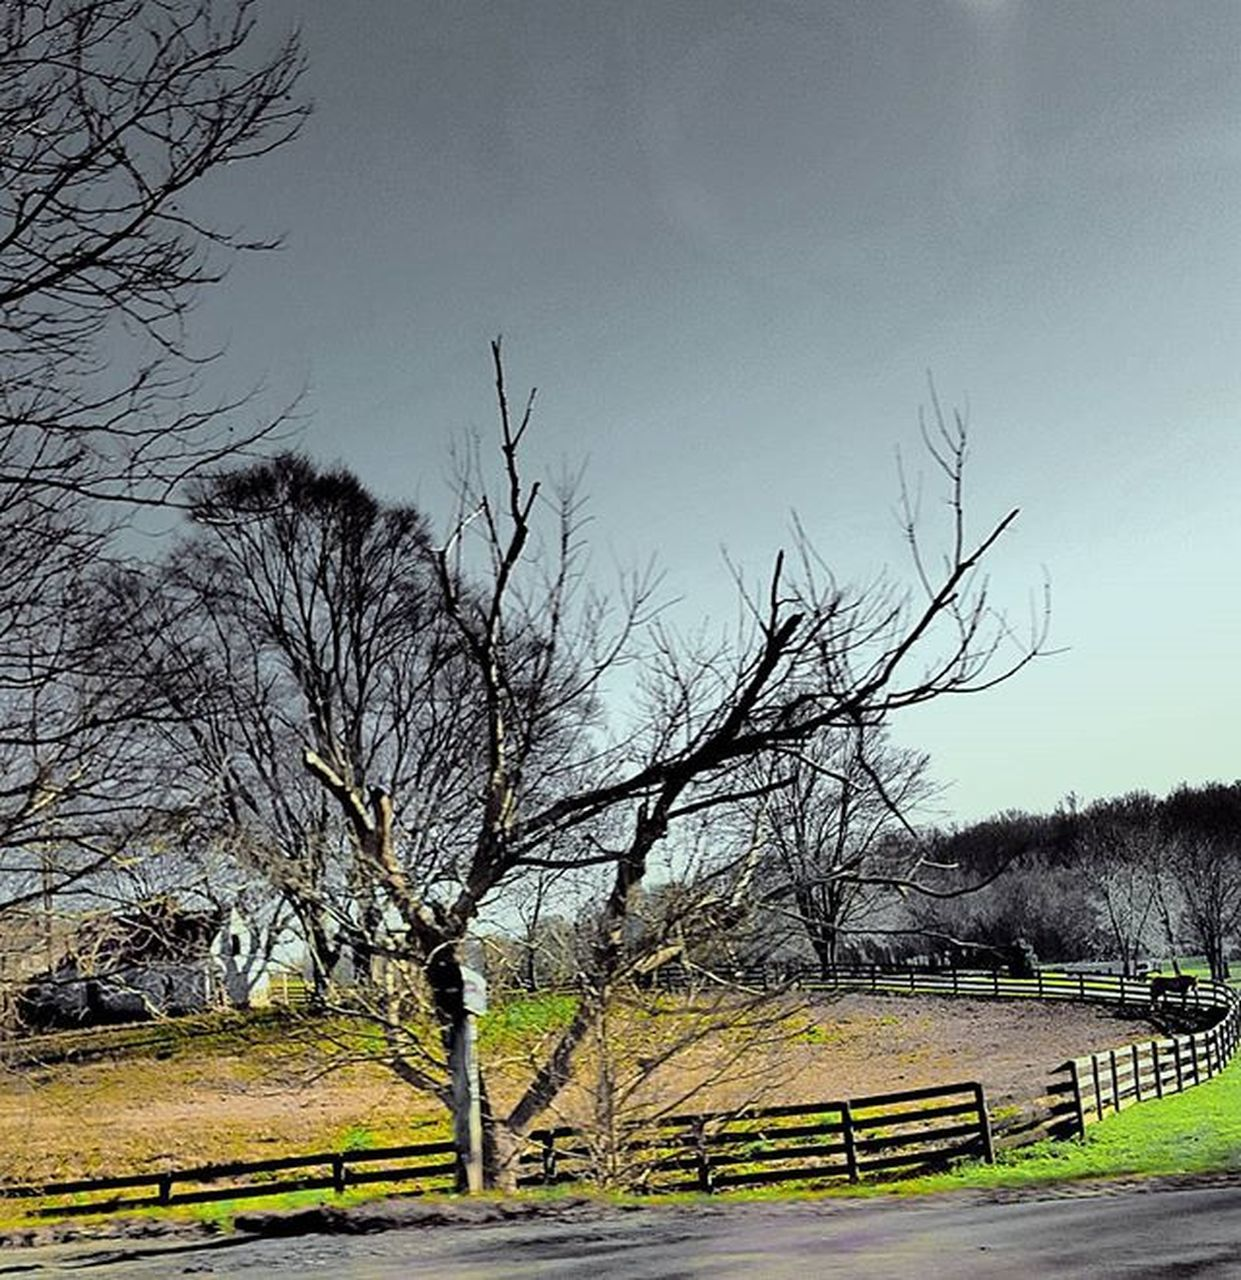 bare tree, tree, tranquility, no people, branch, nature, day, landscape, outdoors, sky, beauty in nature, scenics, grass